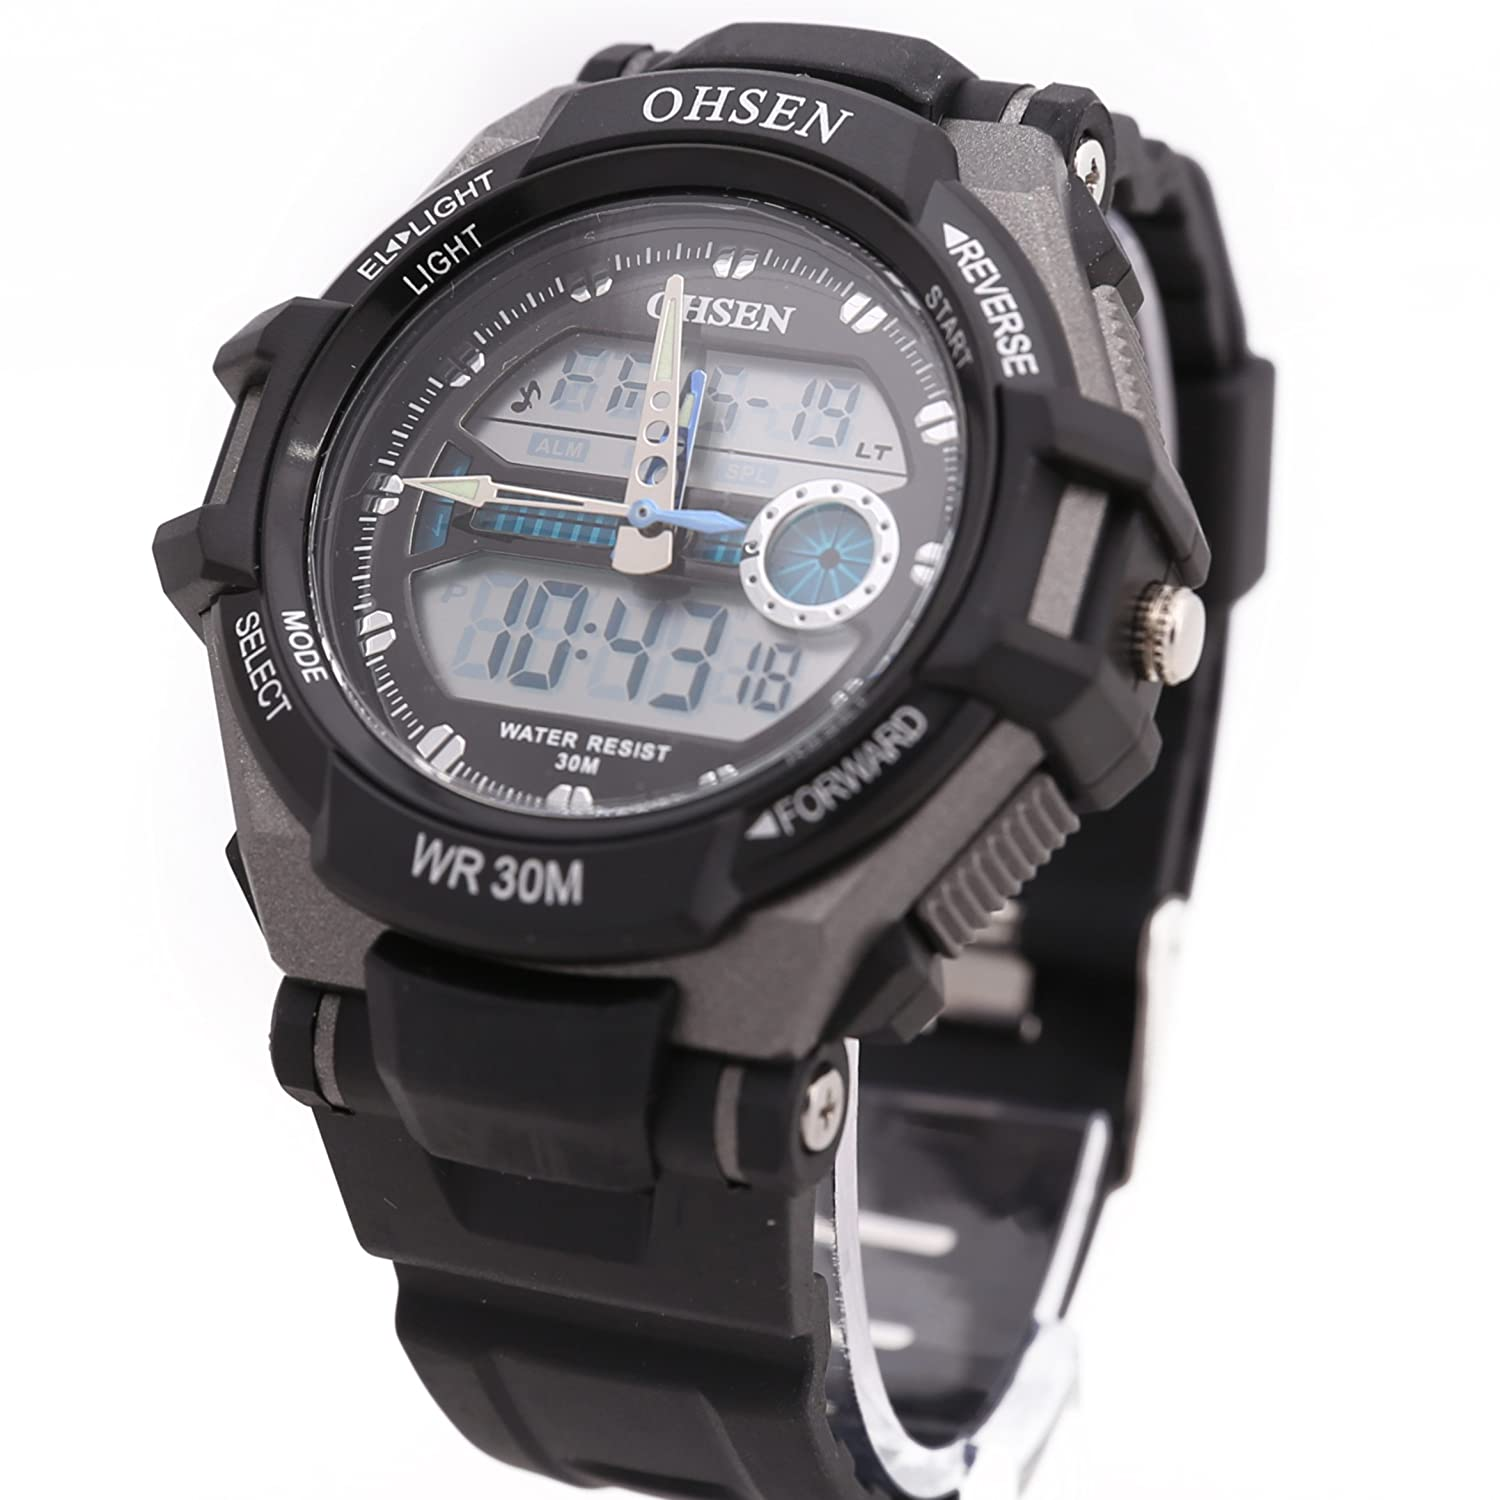 p alarm chronograph watch collection unisex casio classic watches